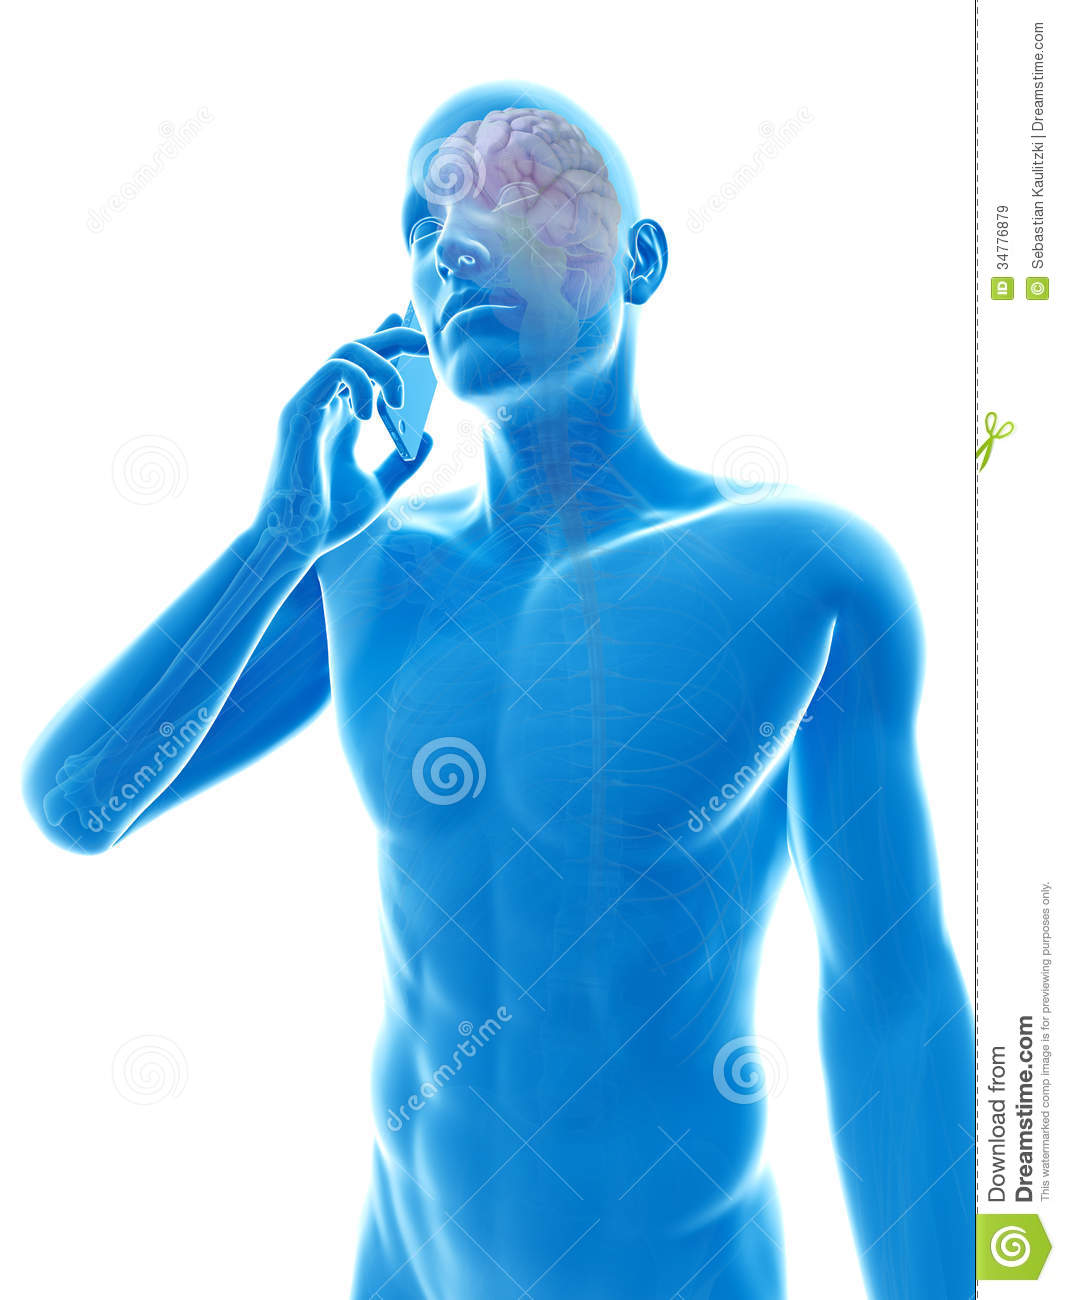 the influences of mobile phone Cell phones have become an extremely popular gadget used for daily living and,  in most cases, have replaced landlines when it comes to.